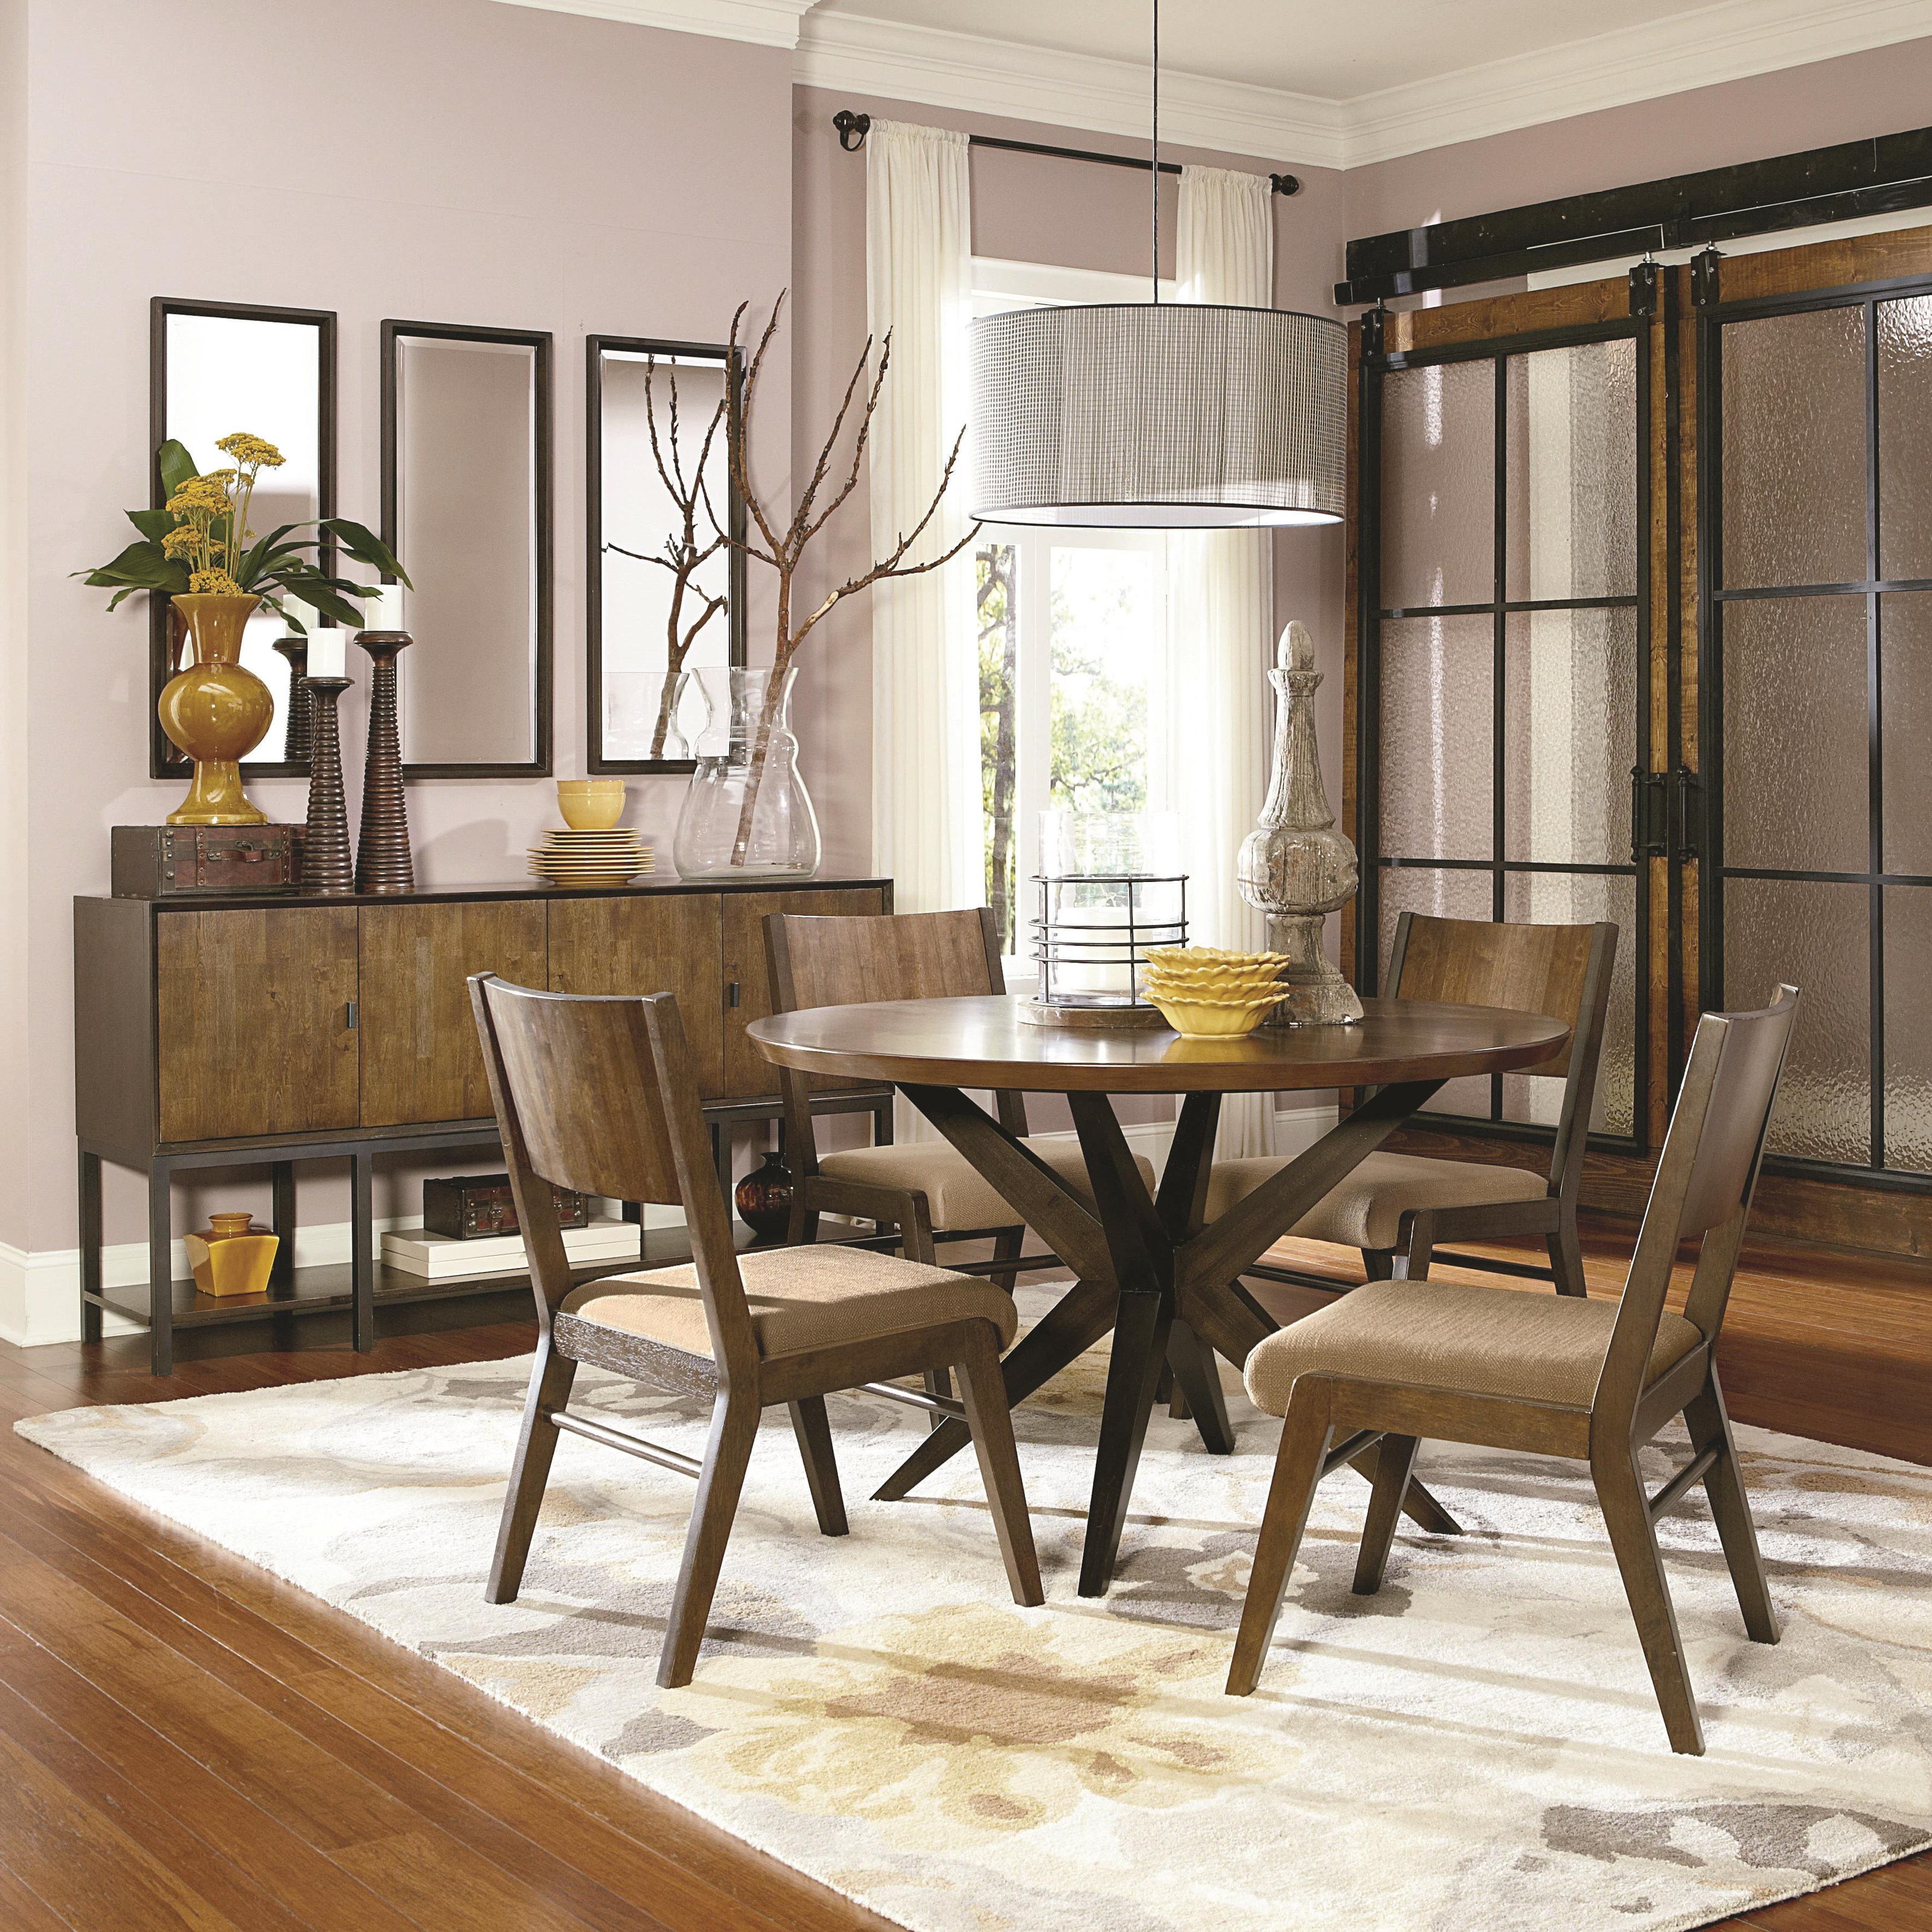 Lilian Lillian 5-Piece Dining Set by Legacy Classic at Morris Home